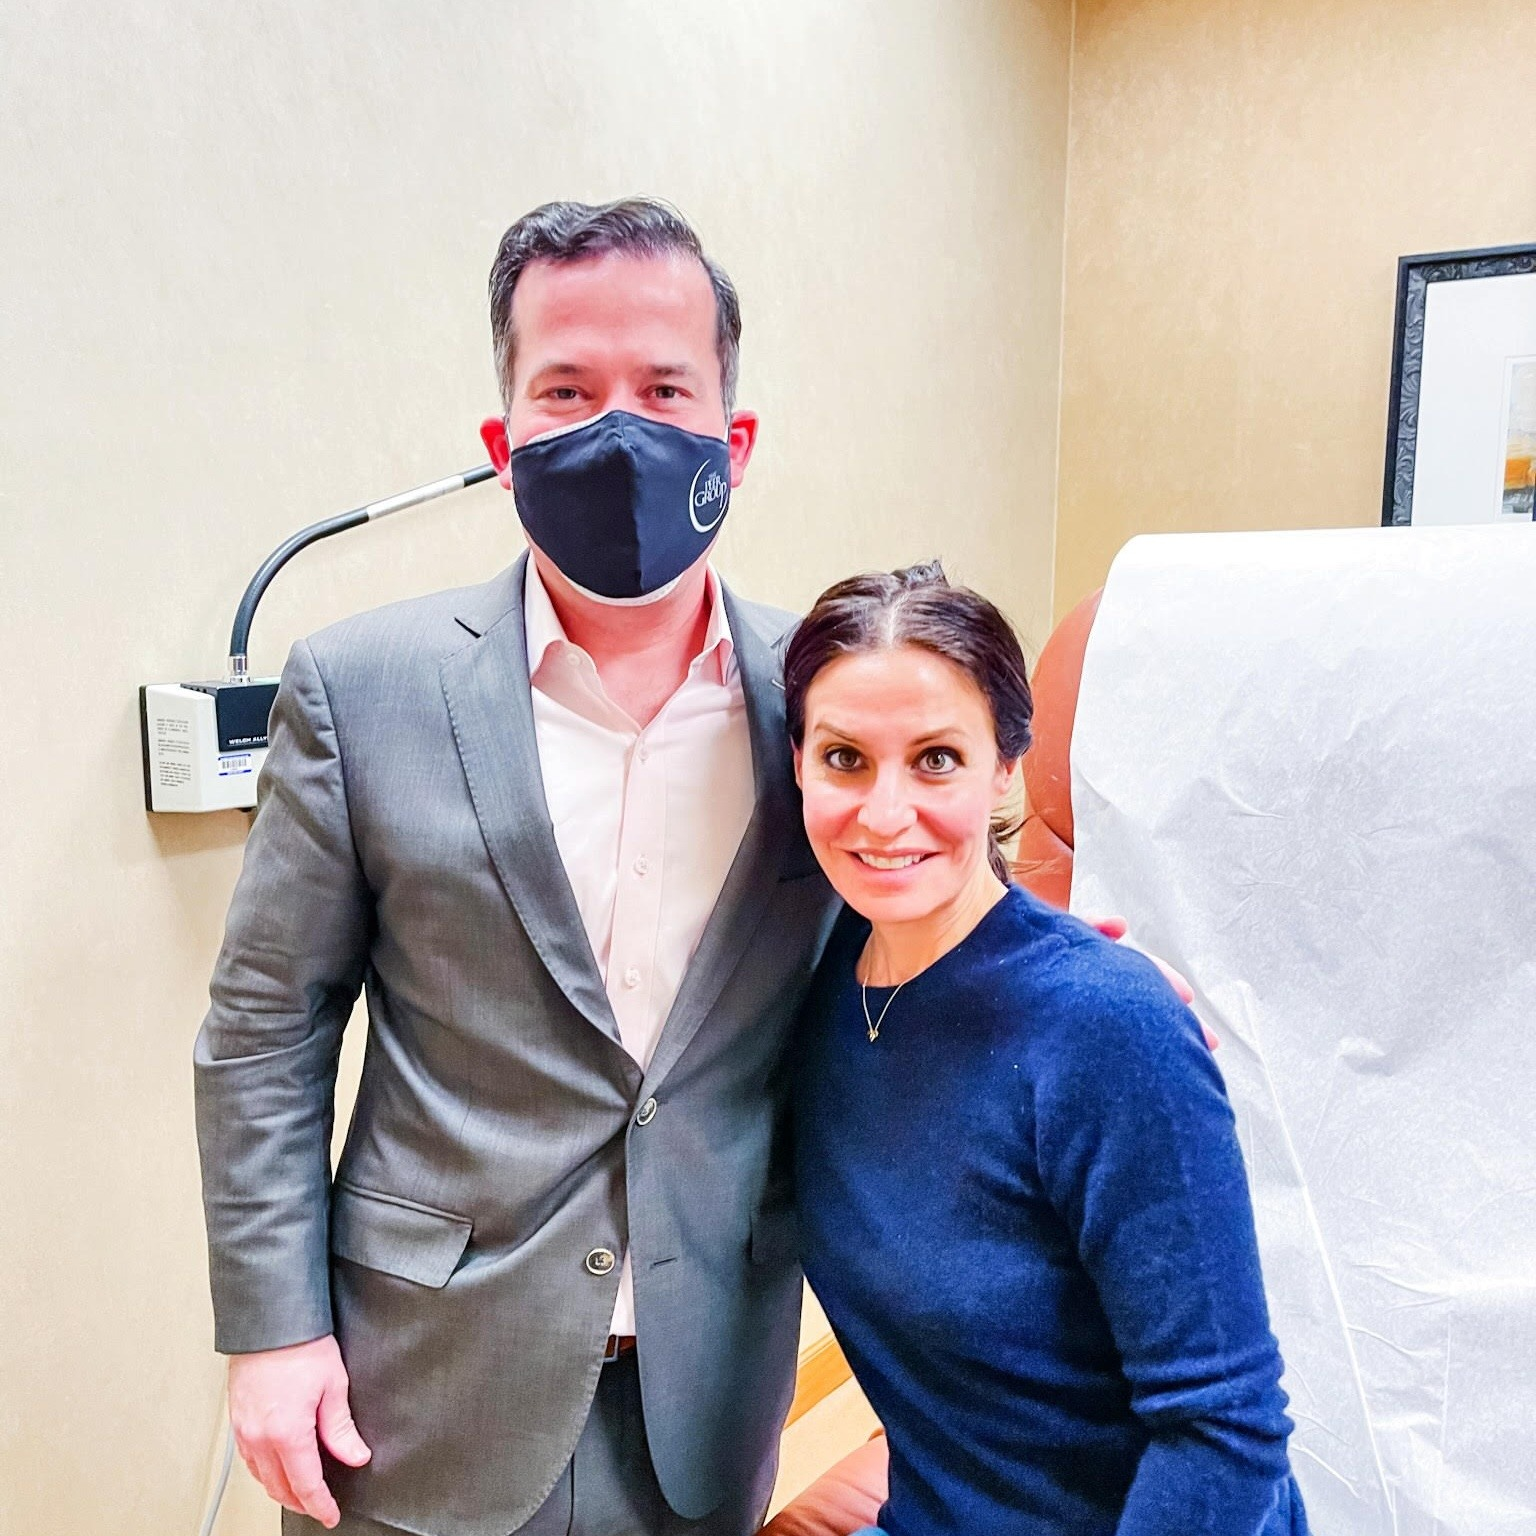 Turning Back Time With Dr. Failey at The Peer Group For Plastic Surgery